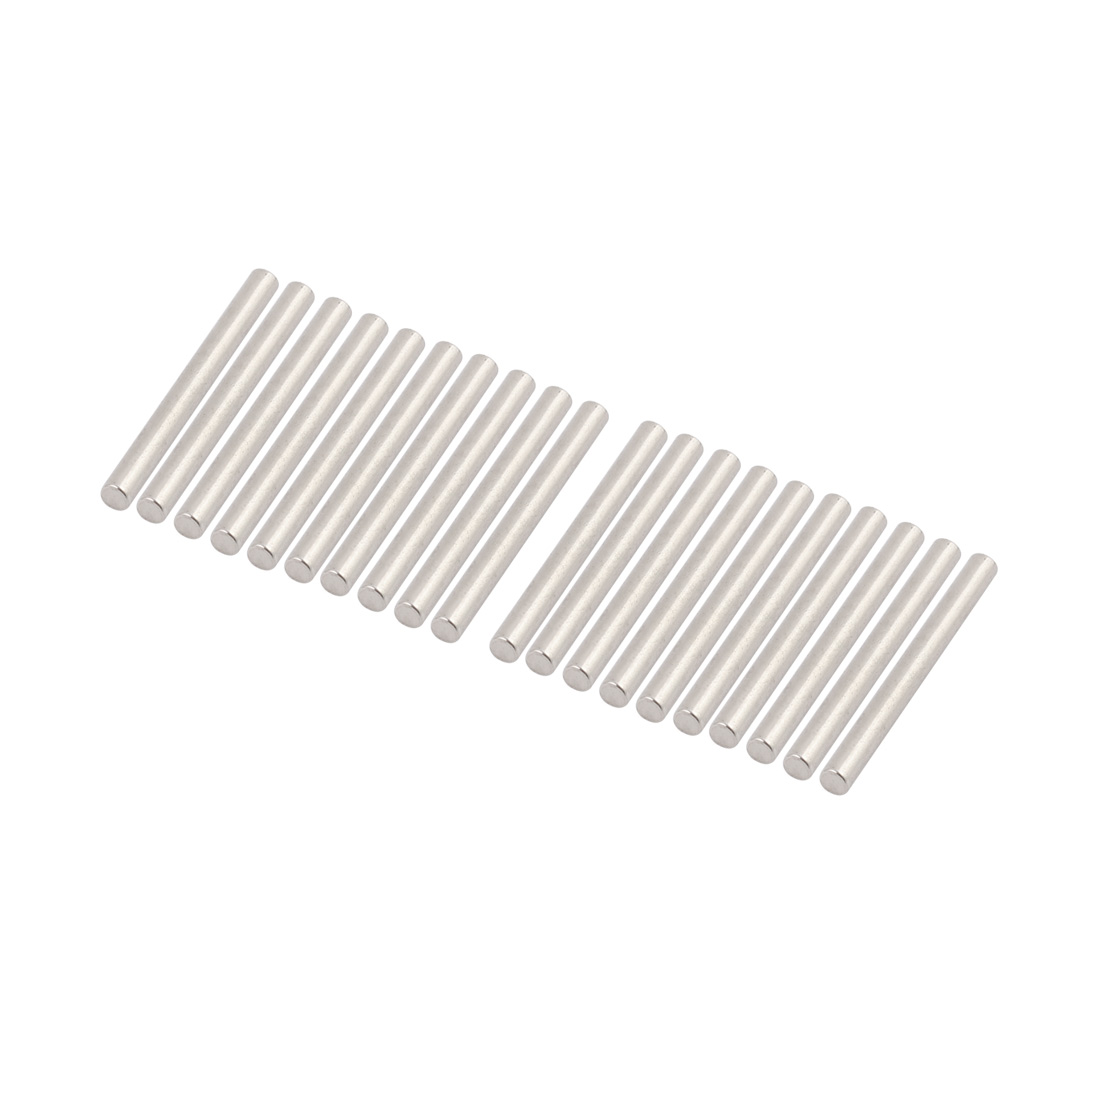 20Pcs Round Shaft Rods Axles 304 Stainless Steel 3mm x 30mm for RC Car